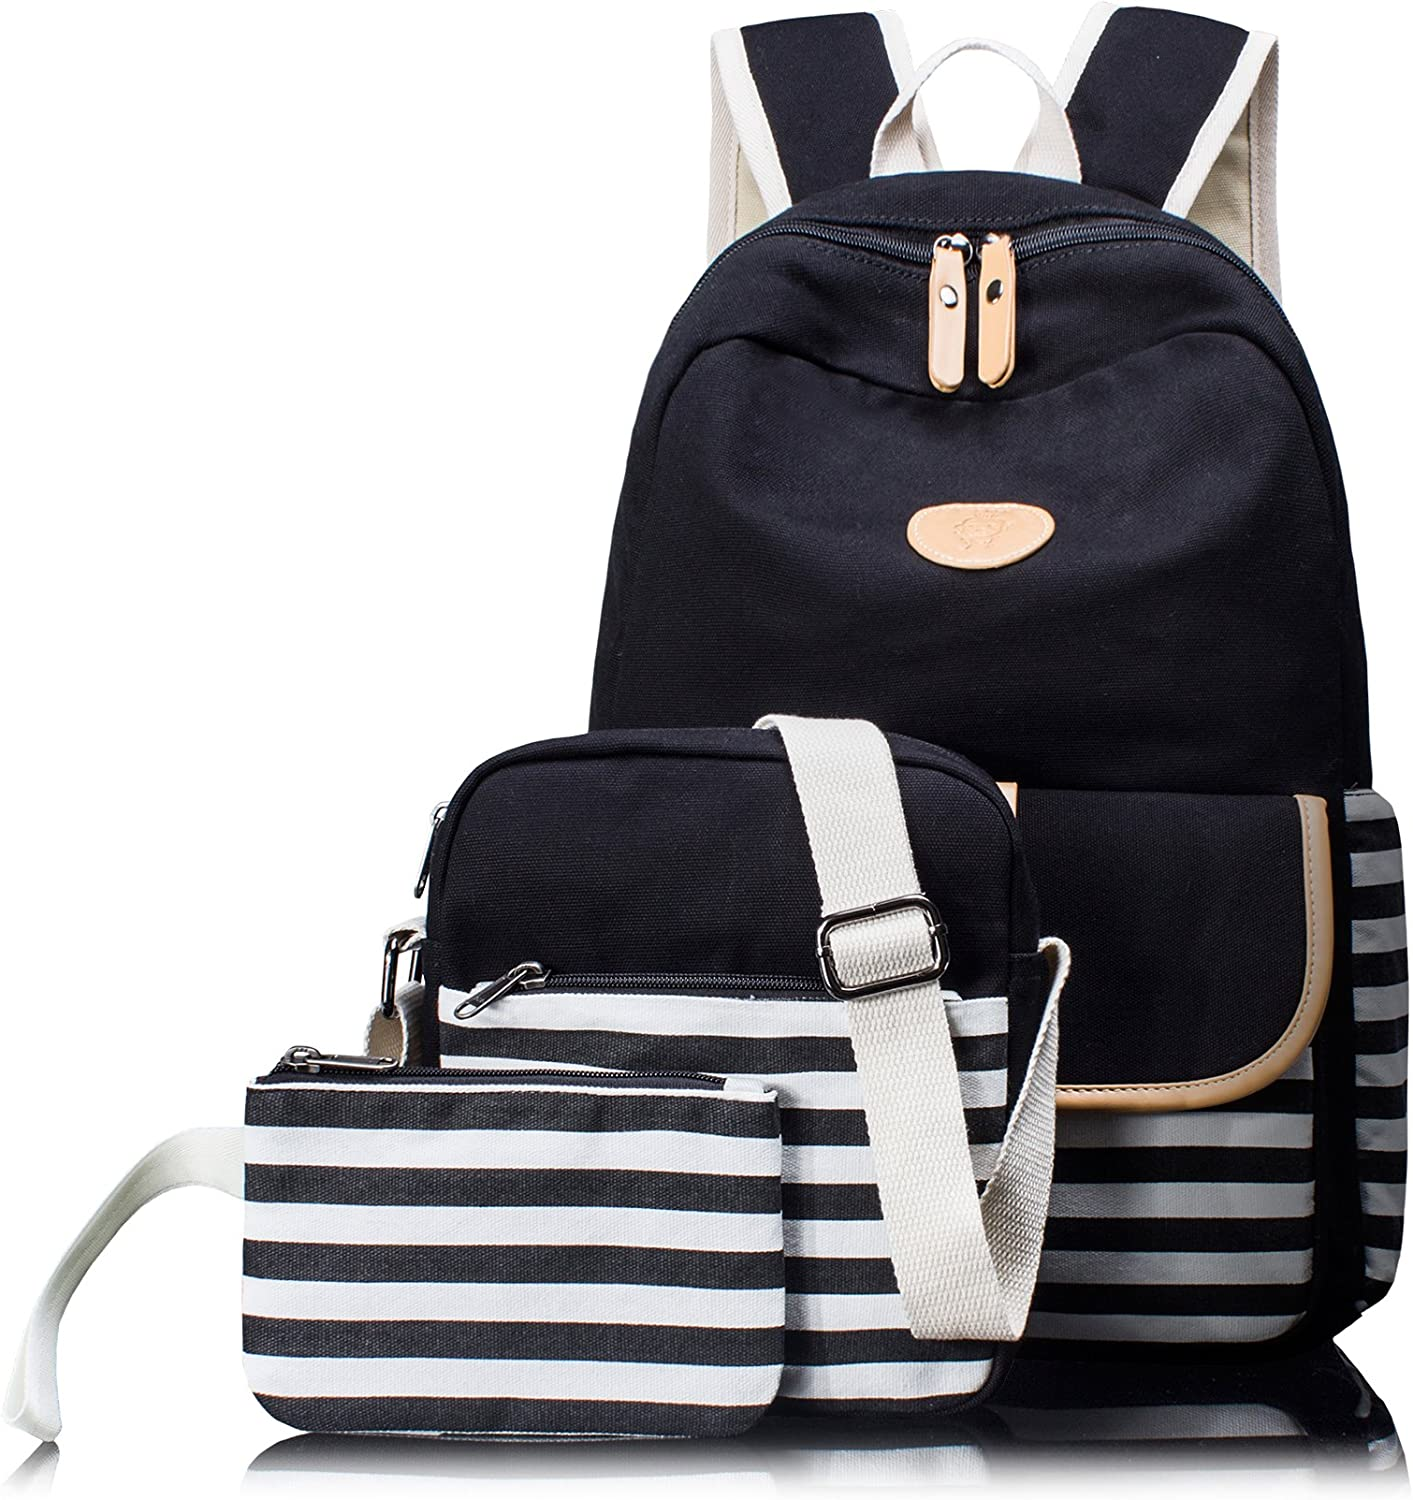 HIKKERLINK 3in1 Cute Thickened Canvas School Backpack for kids Shoulder Bag Pencil Case Black